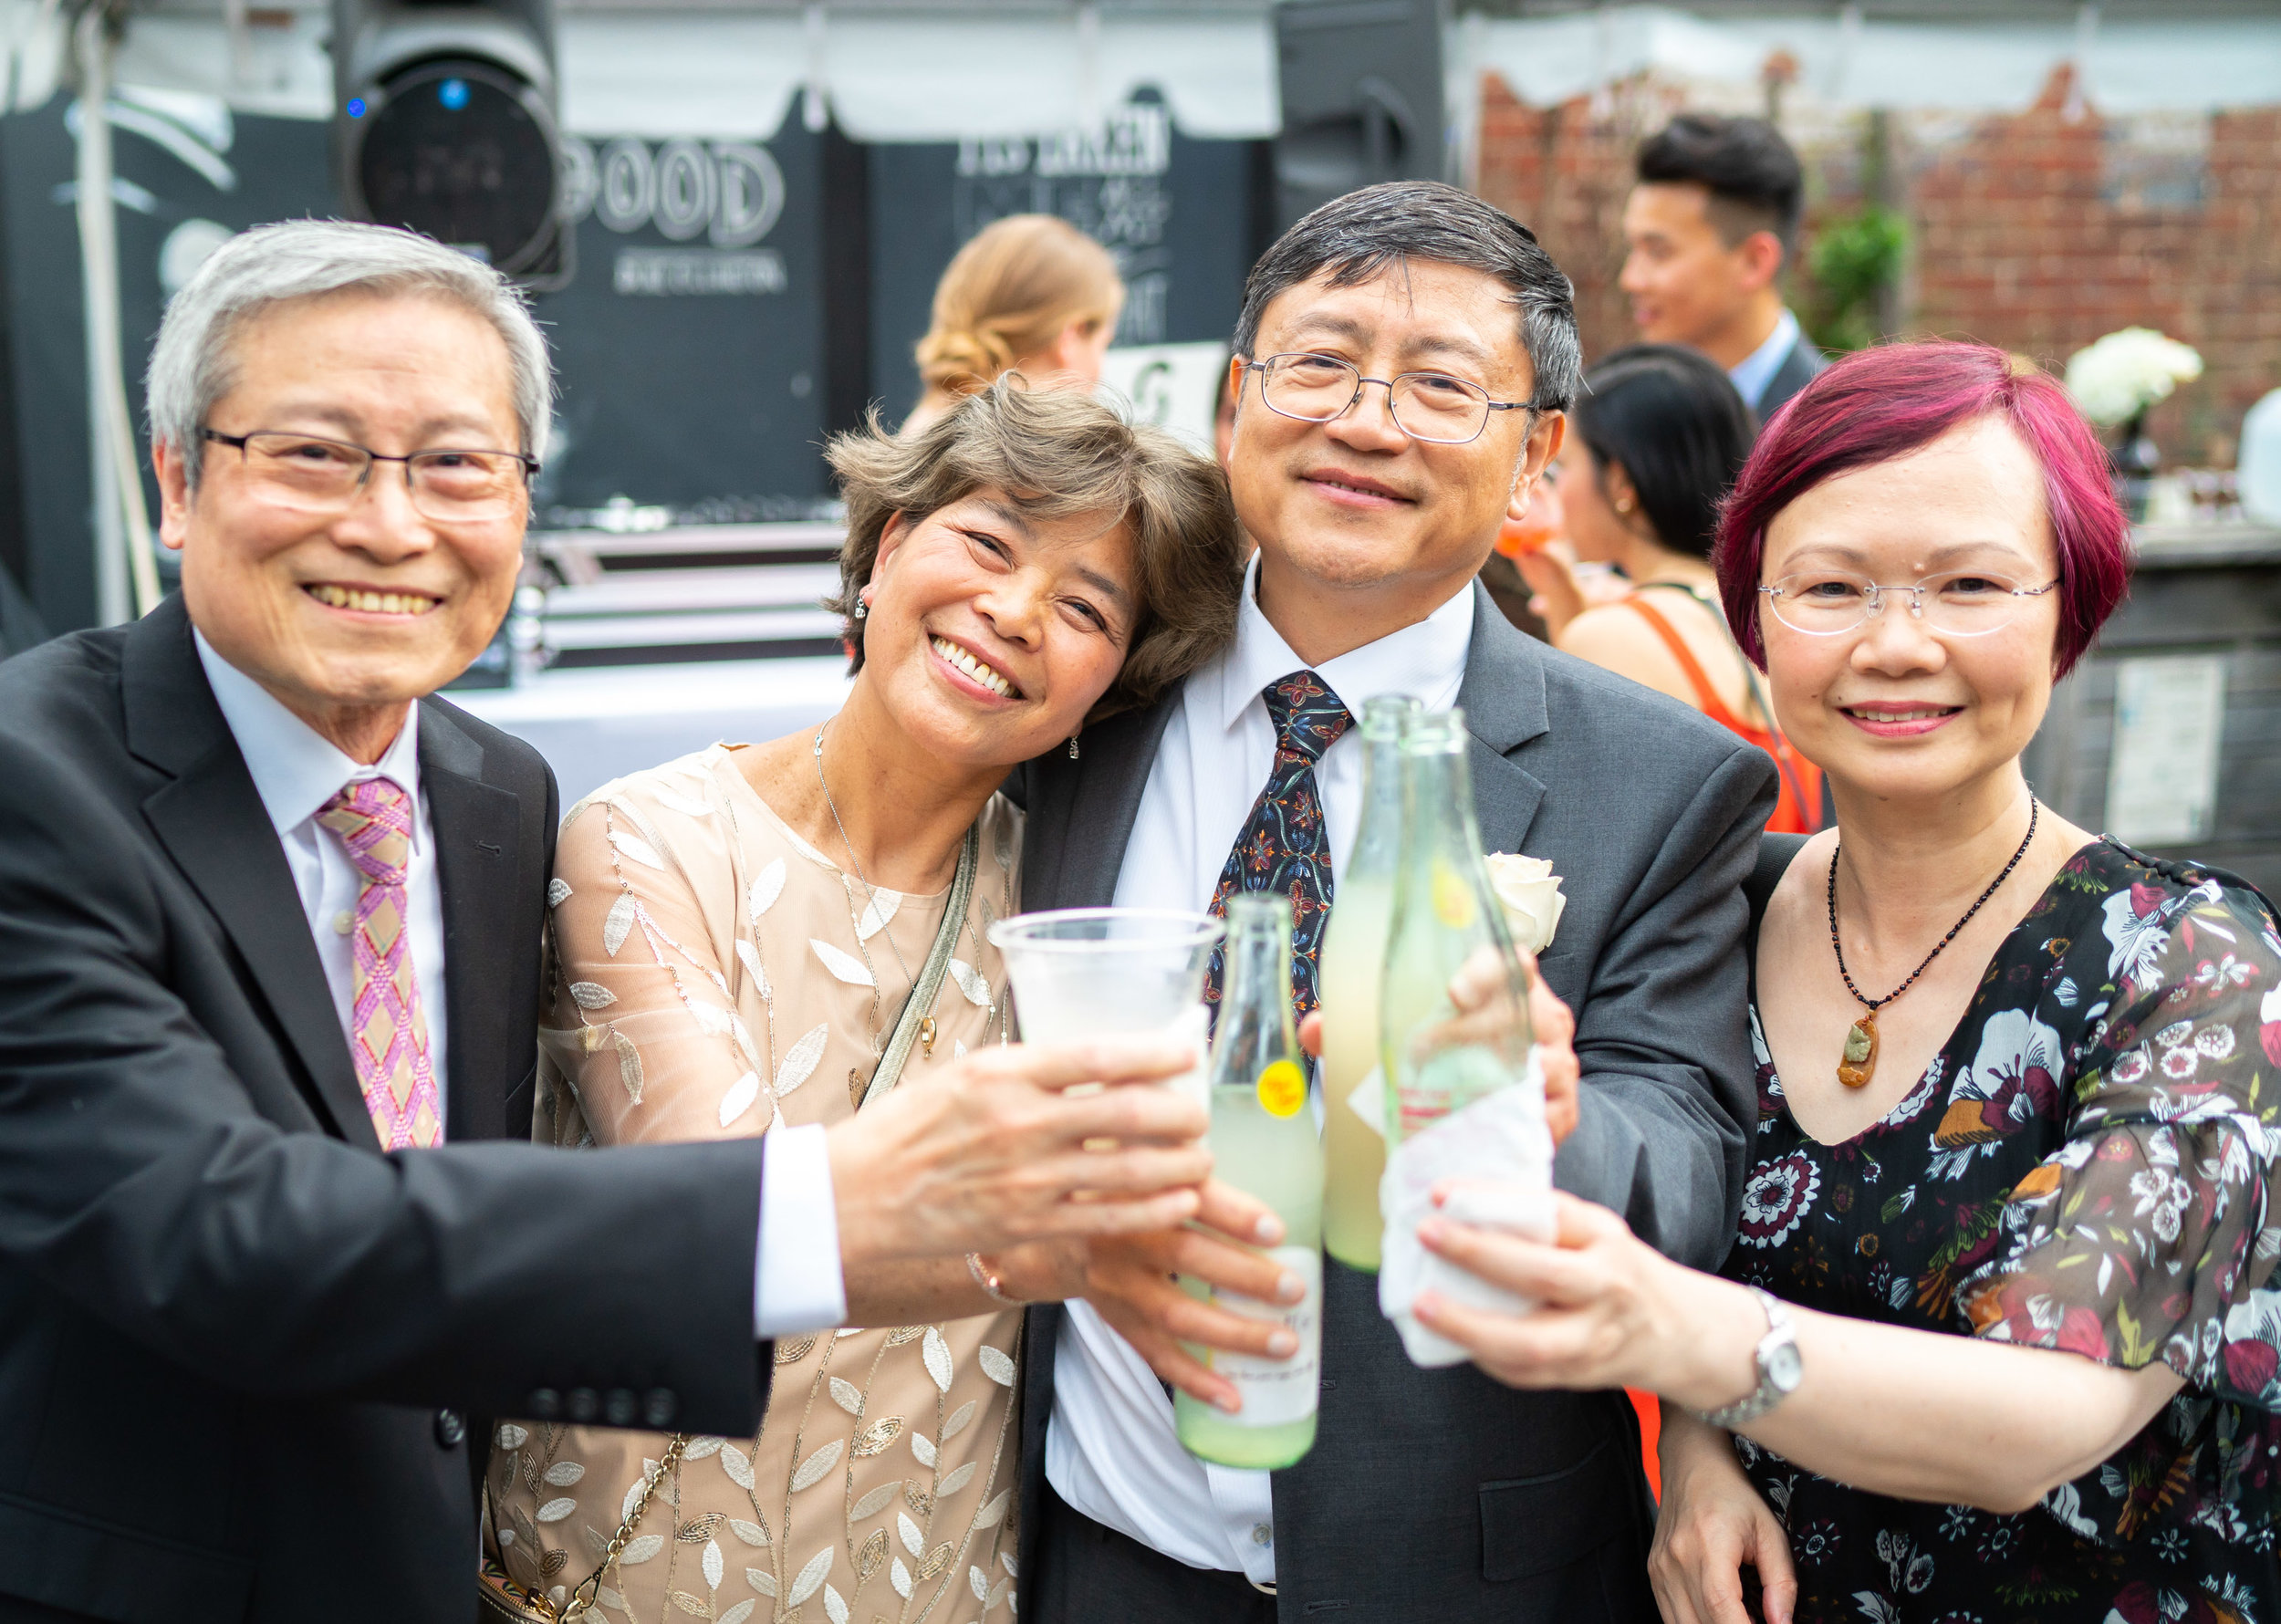 Gallery OonH wedding guests enjoying drinks during cocktail hour